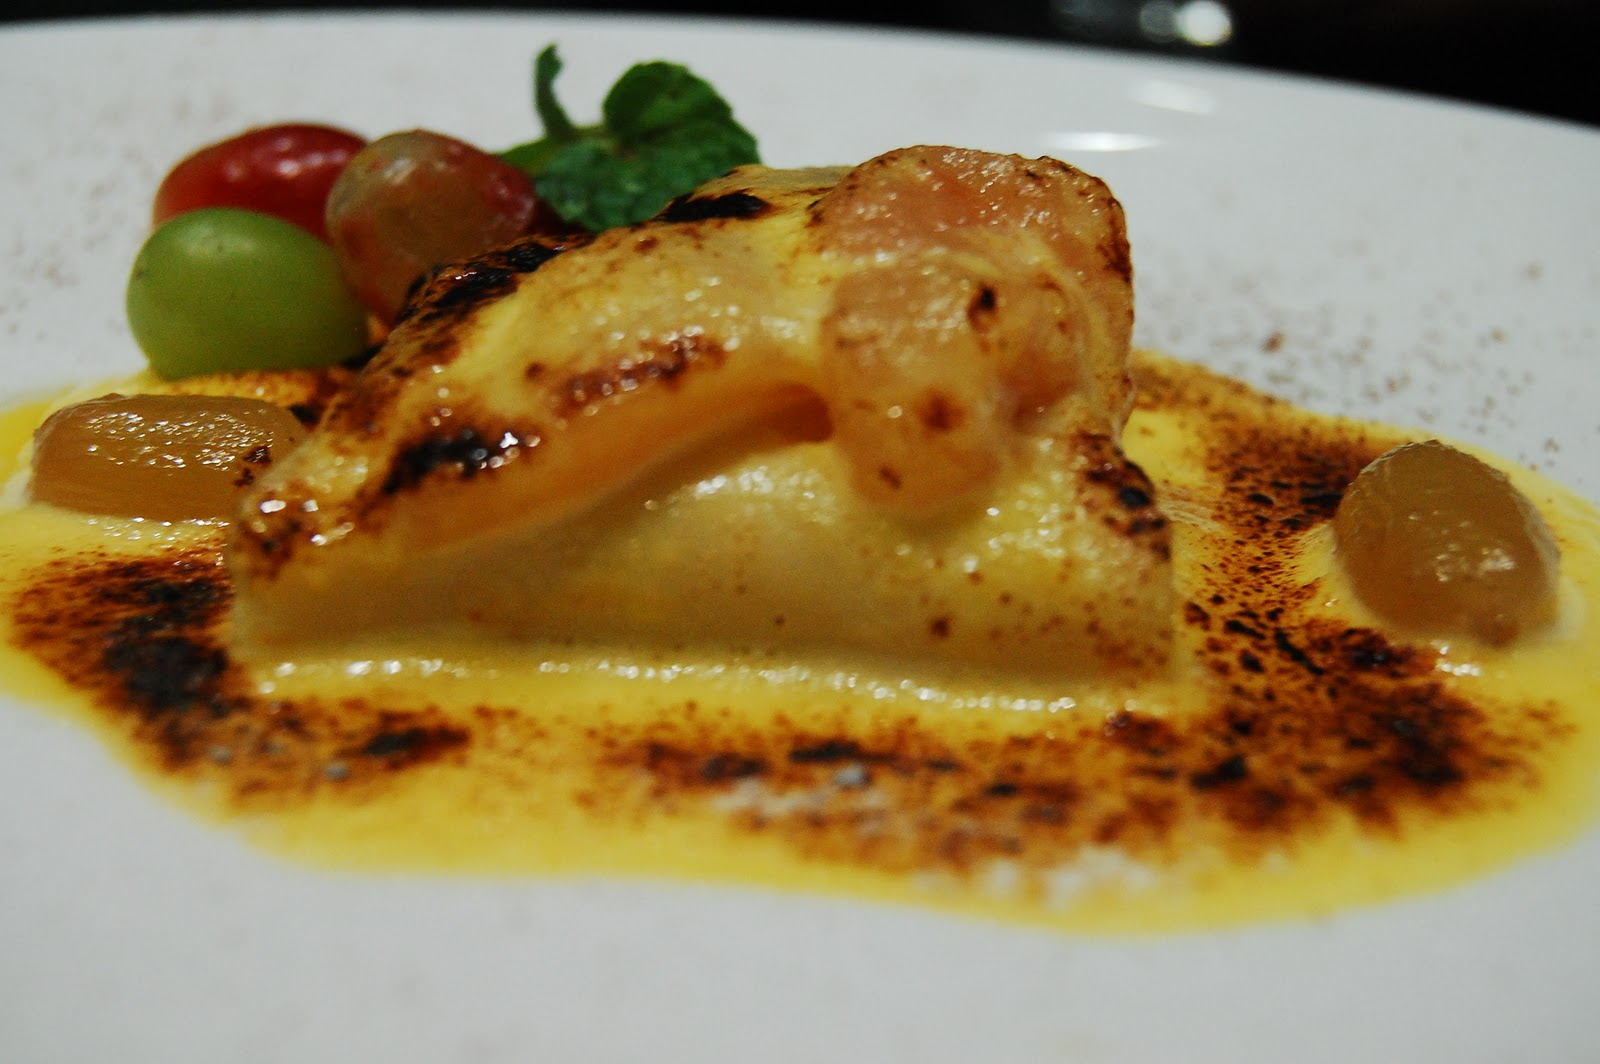 Us potato cuts jpg thanksgiving dinner at restaurant 9501 - Poached Pears Grapes Mashed Potato Crepes And Vodka Sabayon By Chef Myrna Segismundo For The 2011 Us Potato Board Thanksgiving Dinner